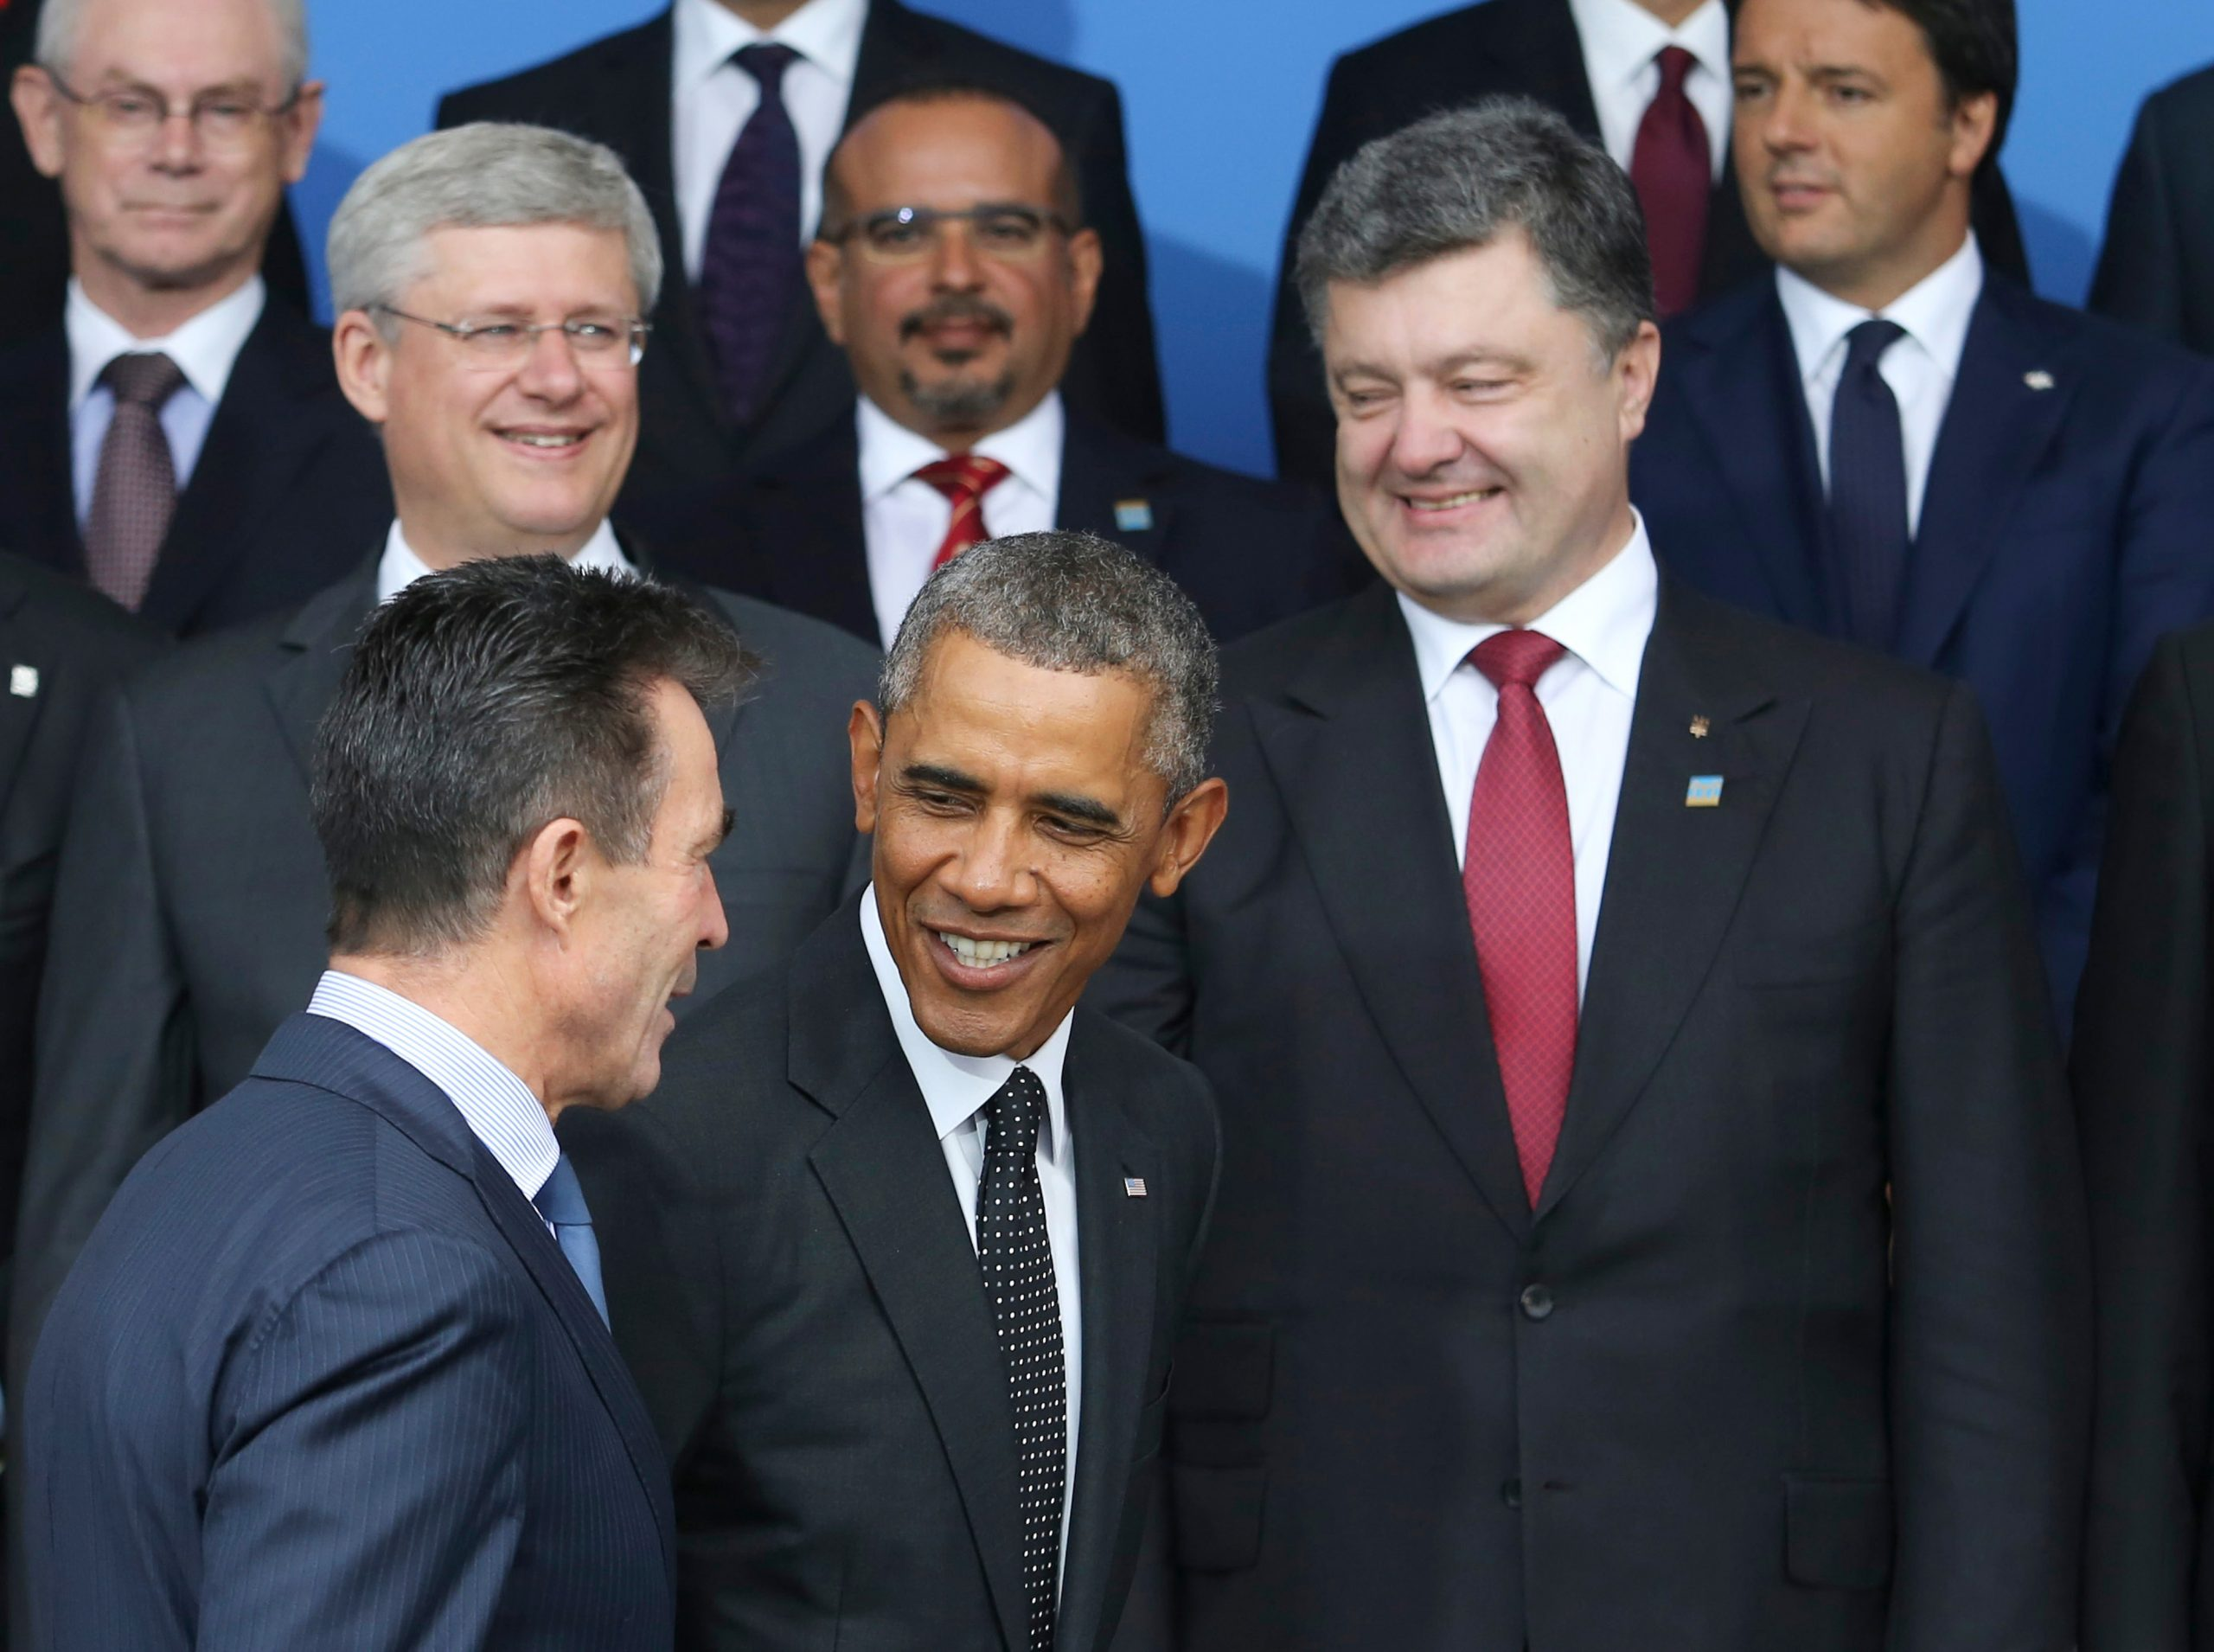 Barack Obama, centre, speaks with Anders Fogh Rasmussen, secretary general of the North Atlantic Treaty Organization (NATO), left, as Petro Poroshenko, billionaire and Ukraine's president, right, looks on before the family photograph at the NATO summit in Newport, U.K., on Thursday, Sept. 4, 2014.